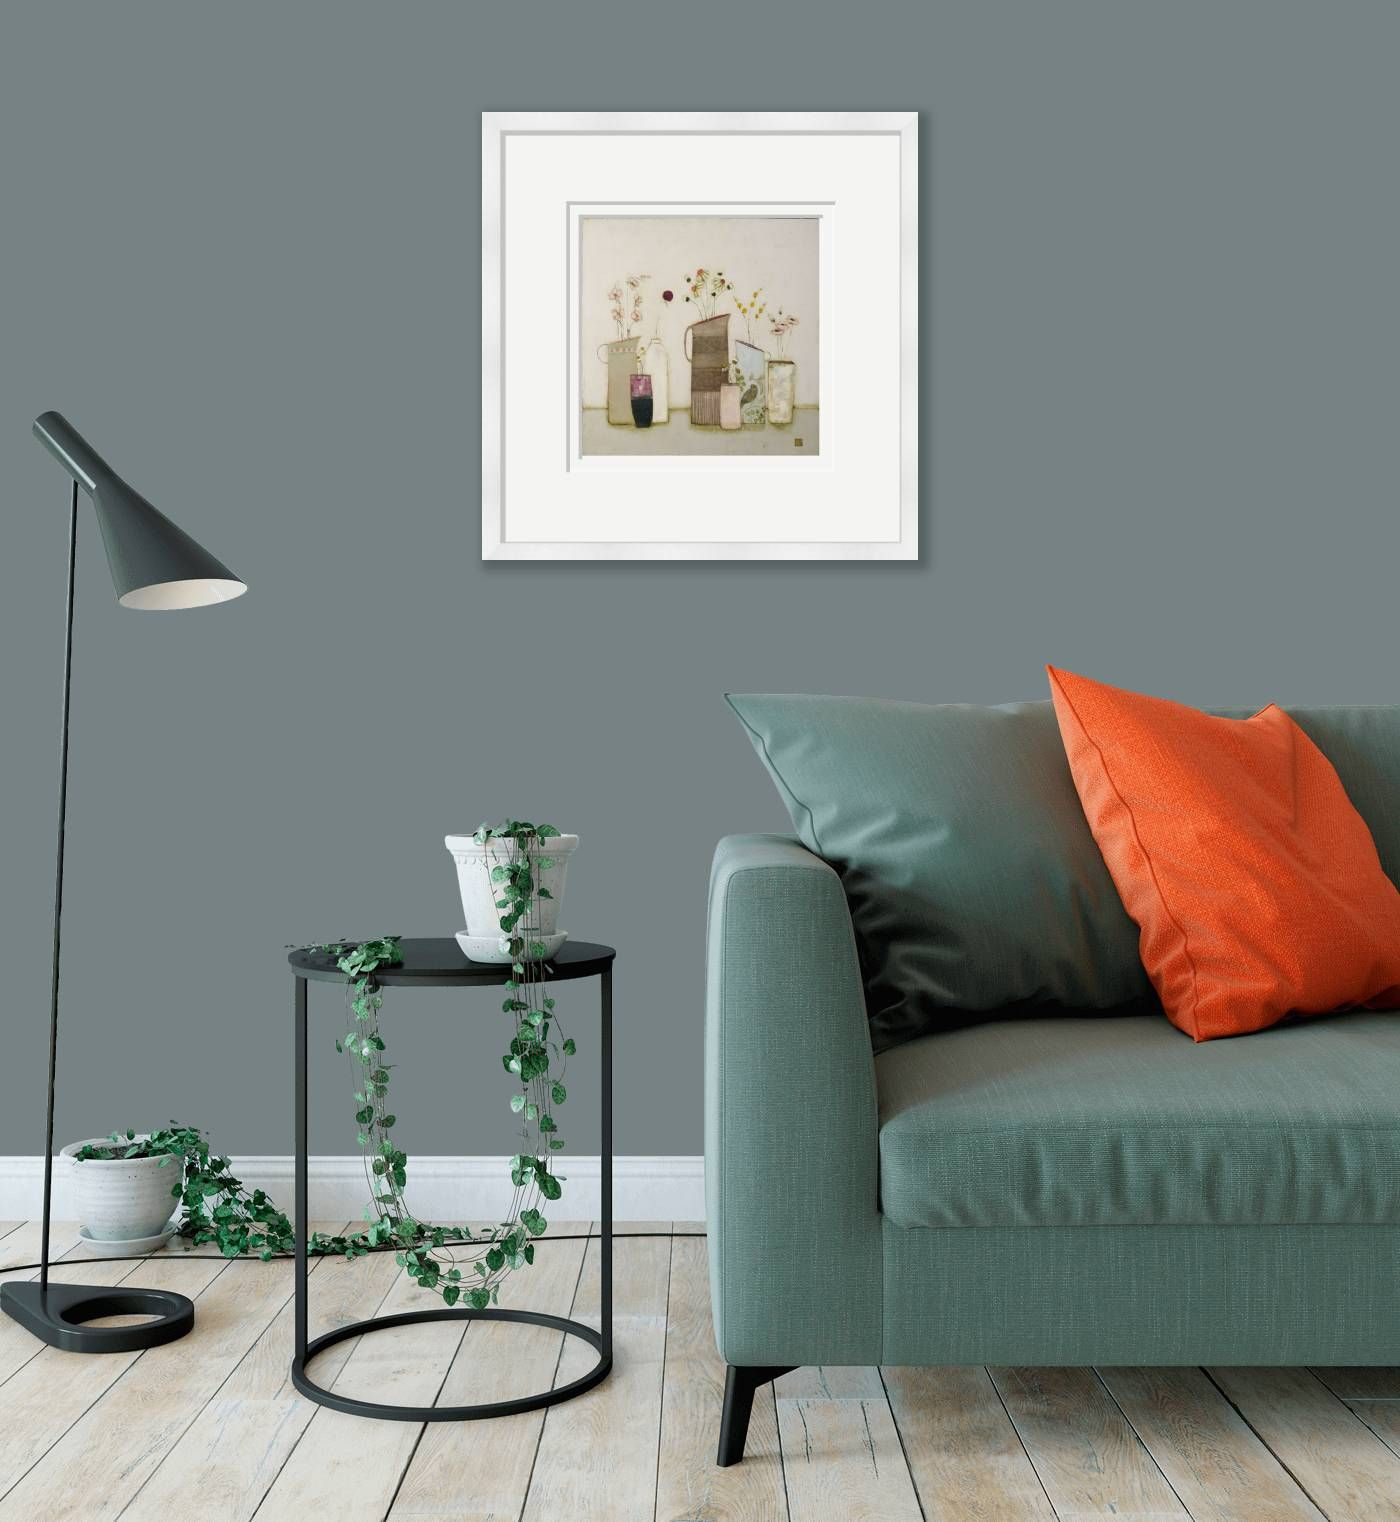 Medium framed - A calm place for the birds to rest by Eithne  Roberts